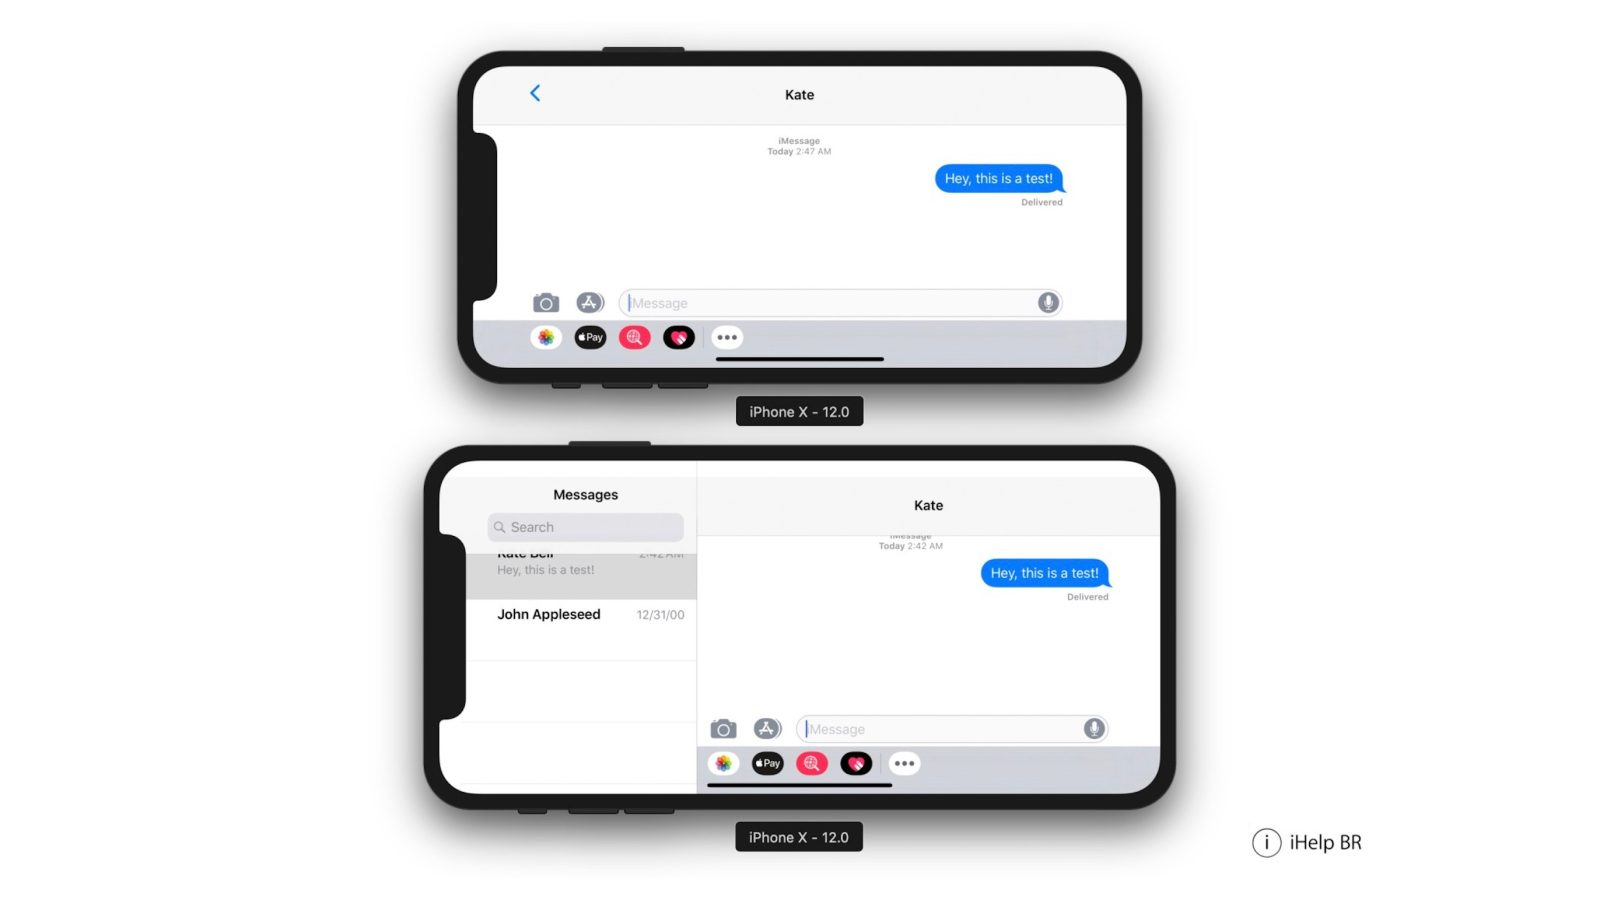 iOS 12 beta hints at rumored iPhone X Plus with iPad-like